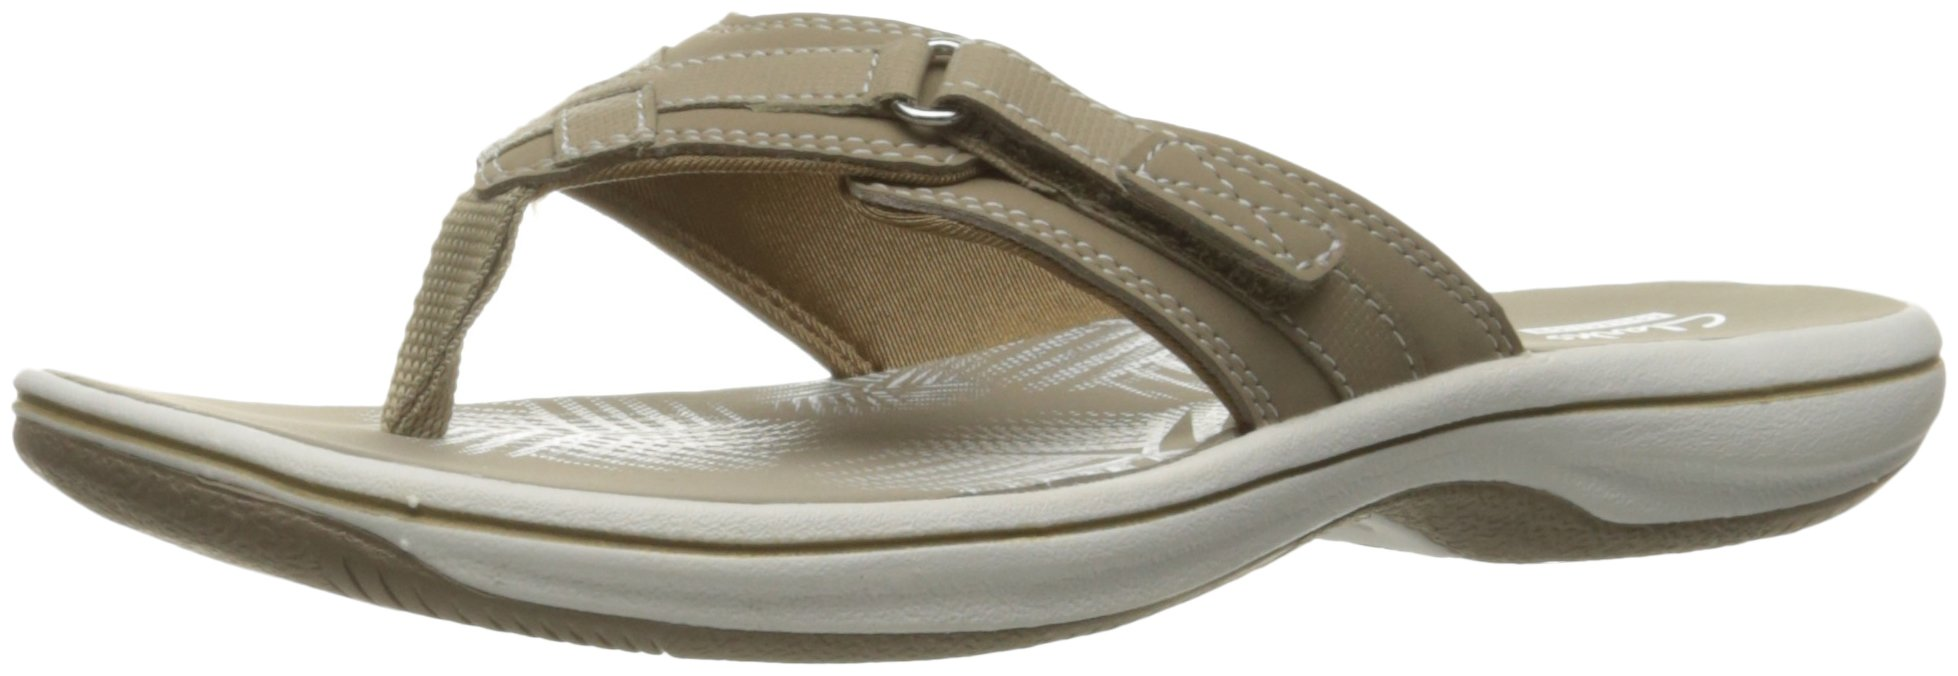 9fbf50370c65 Galleon - Clarks Women s Breeze Sea Flip Flop